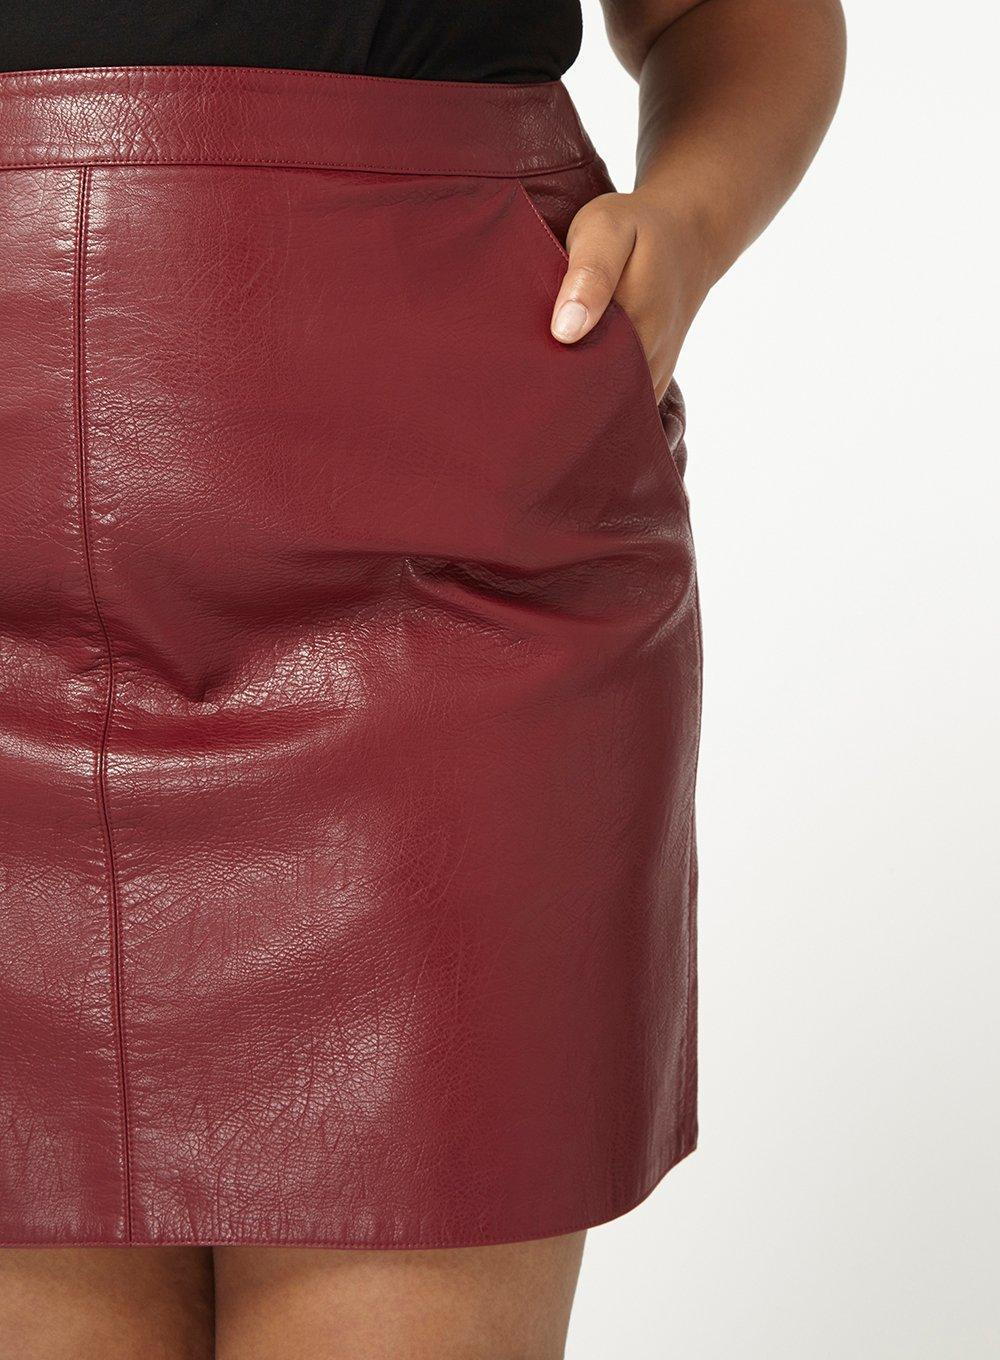 39eed932b Dorothy Perkins Dp Curve Burgundy Pu Pocket Mini Skirt in Red - Lyst